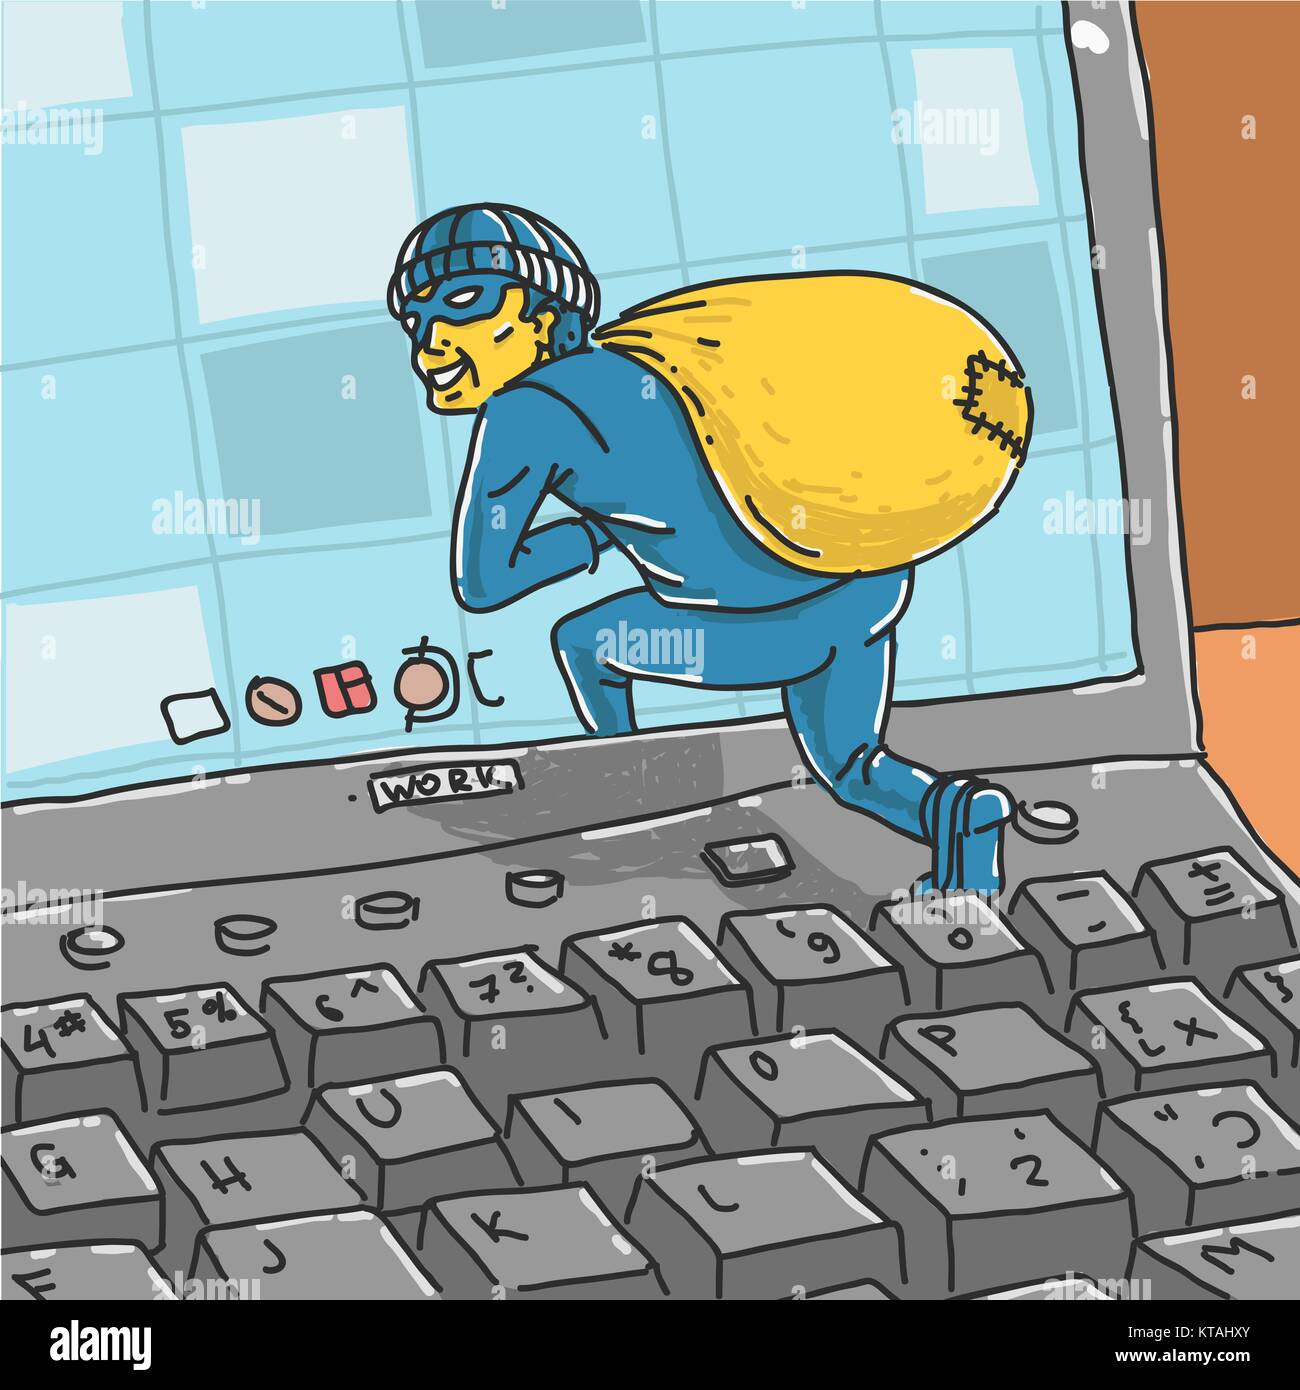 Hacker Steals Information From Computer - Stock Image